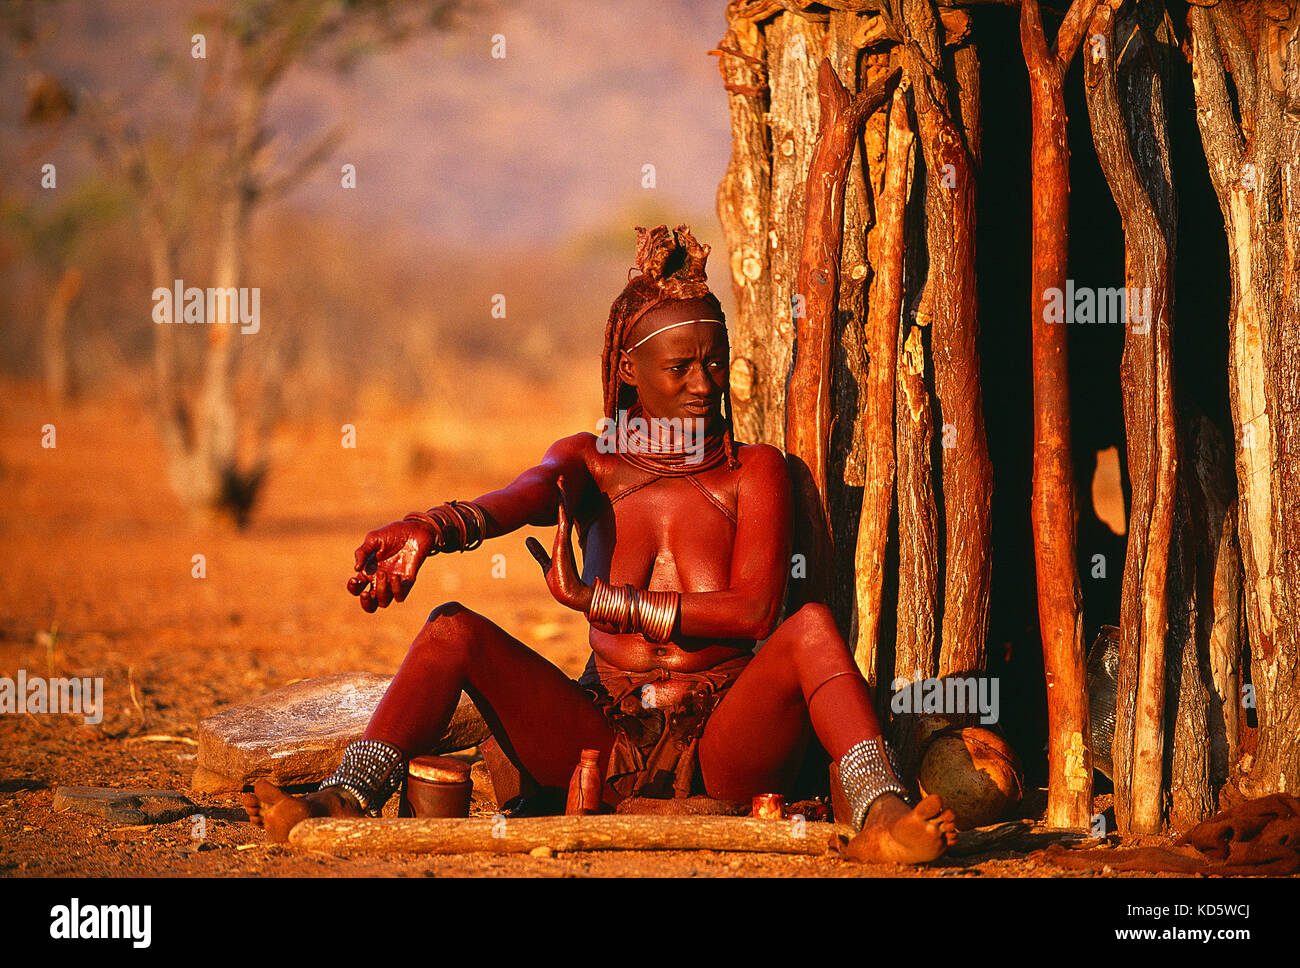 Namibia. Kunene region. Himba woman sitting under tree. - Stock Image